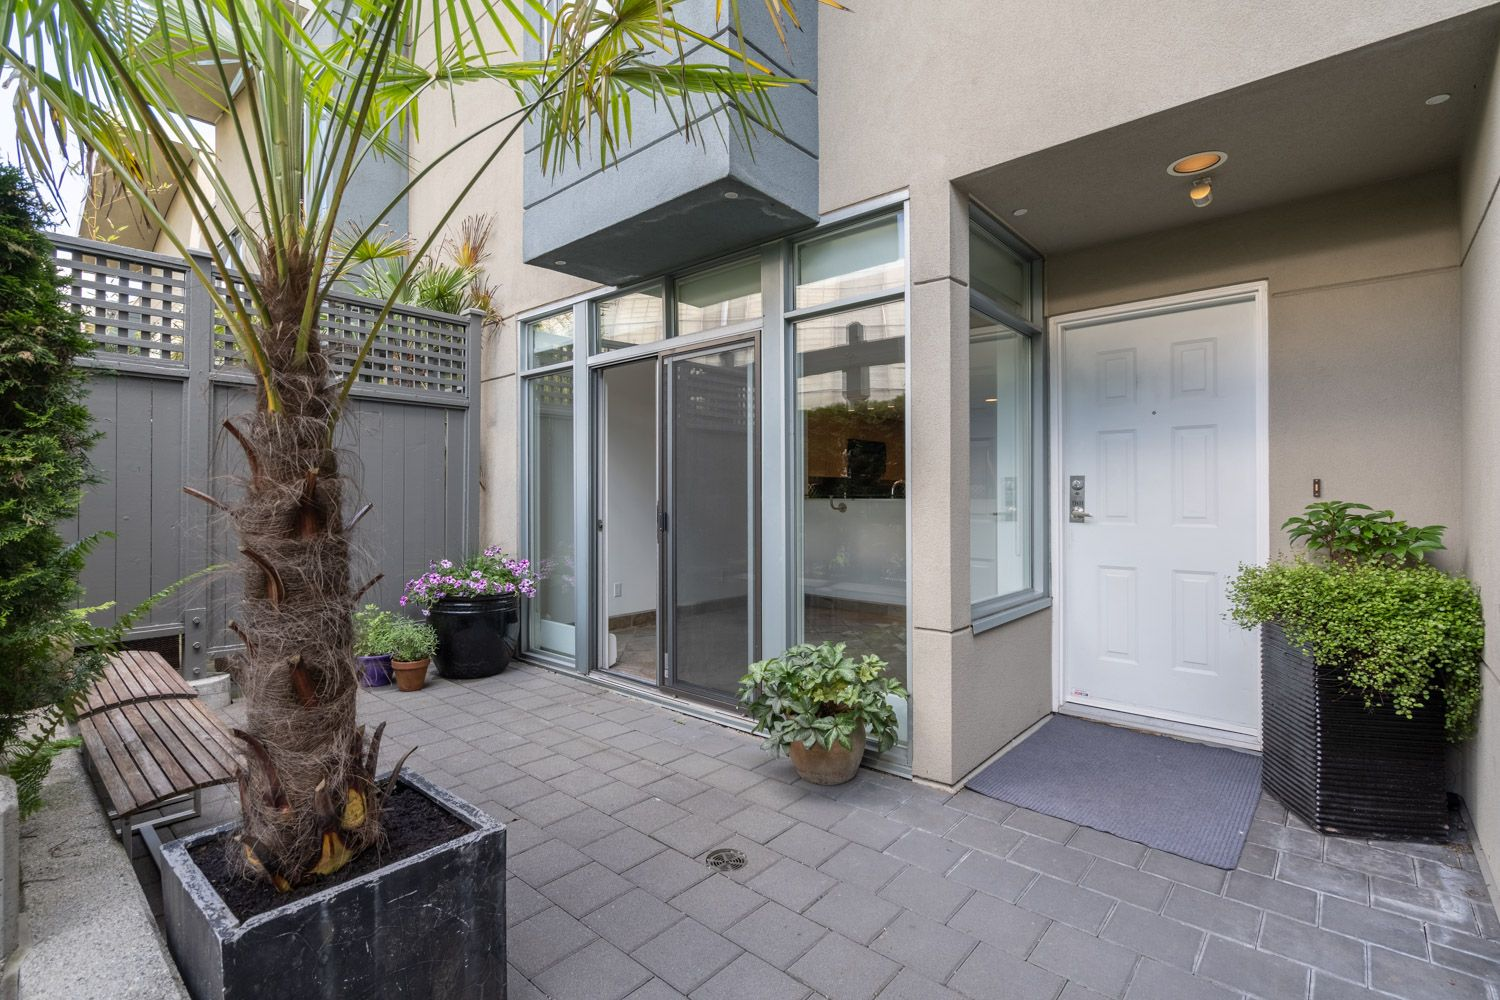 International Village - Crosstown Townhouse for sale: Europa 3 bedroom Stainless Steel Appliances, Granite Countertop, Laminate Floors 1,212 sq.ft. (Listed 2020-05-29)